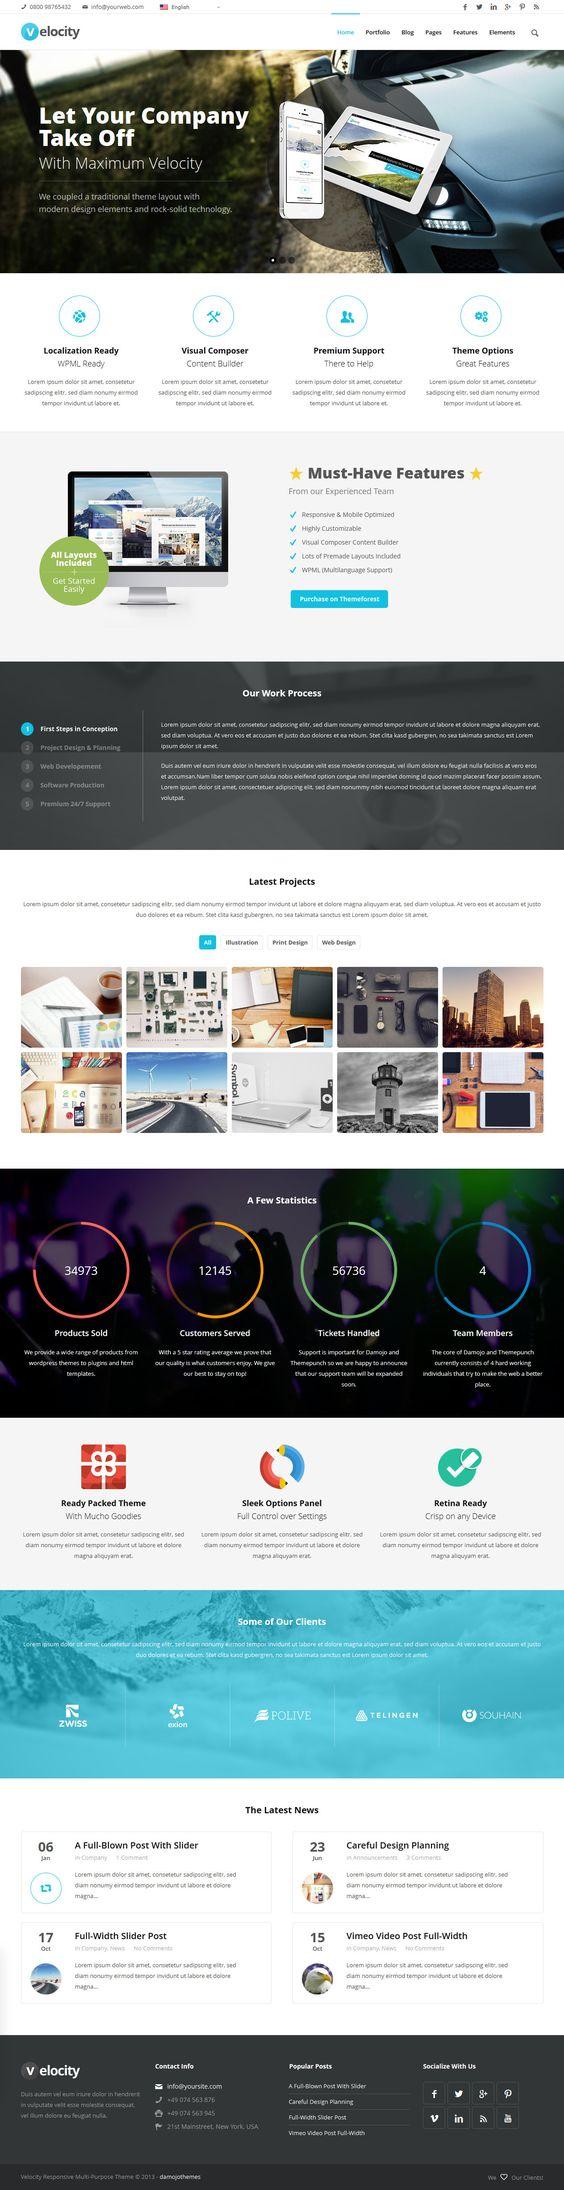 Velocity from ThemeForest - a awesome wordpress theme.